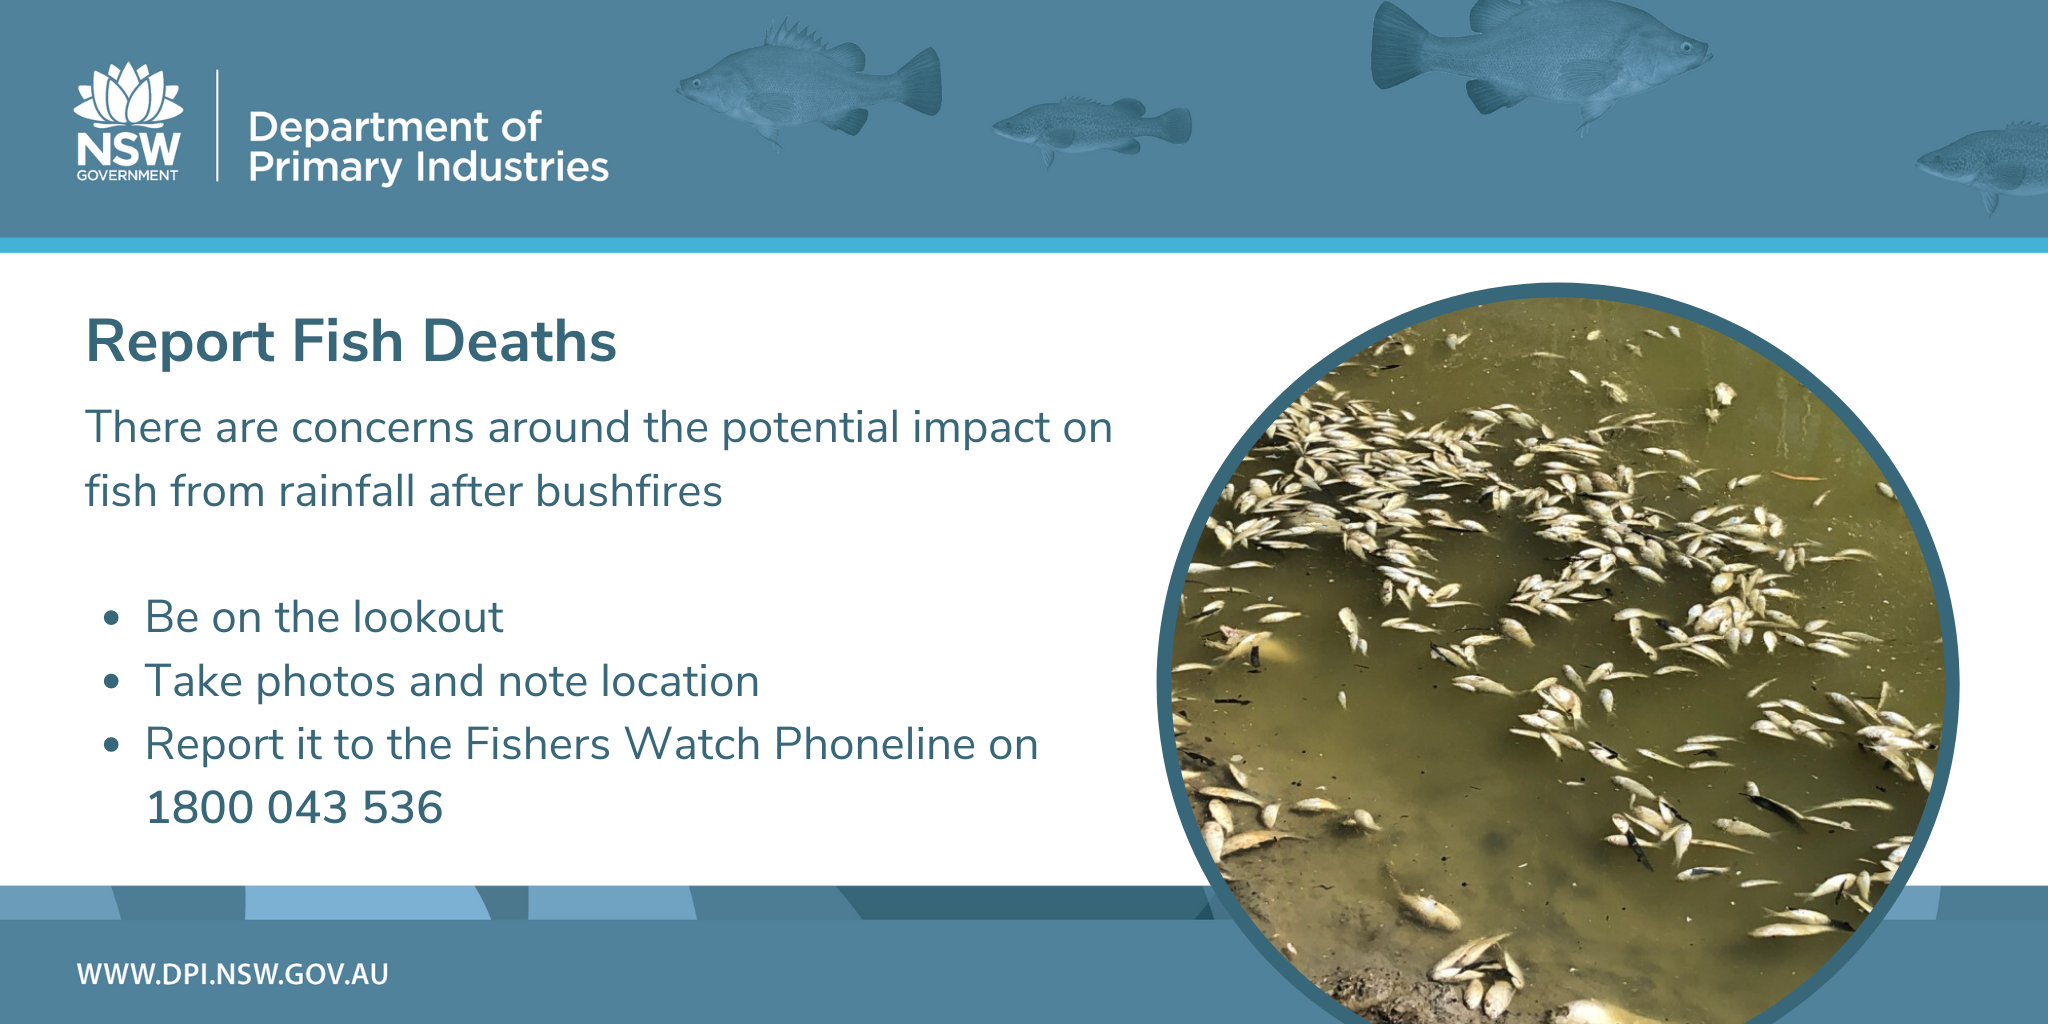 Report Fish Deaths - There are concerns around the potential impact on fish from rainfall after bushfires. Be on the lookout, take photos and note location and report it to the Fishers Watch Phone on 1800 043 536